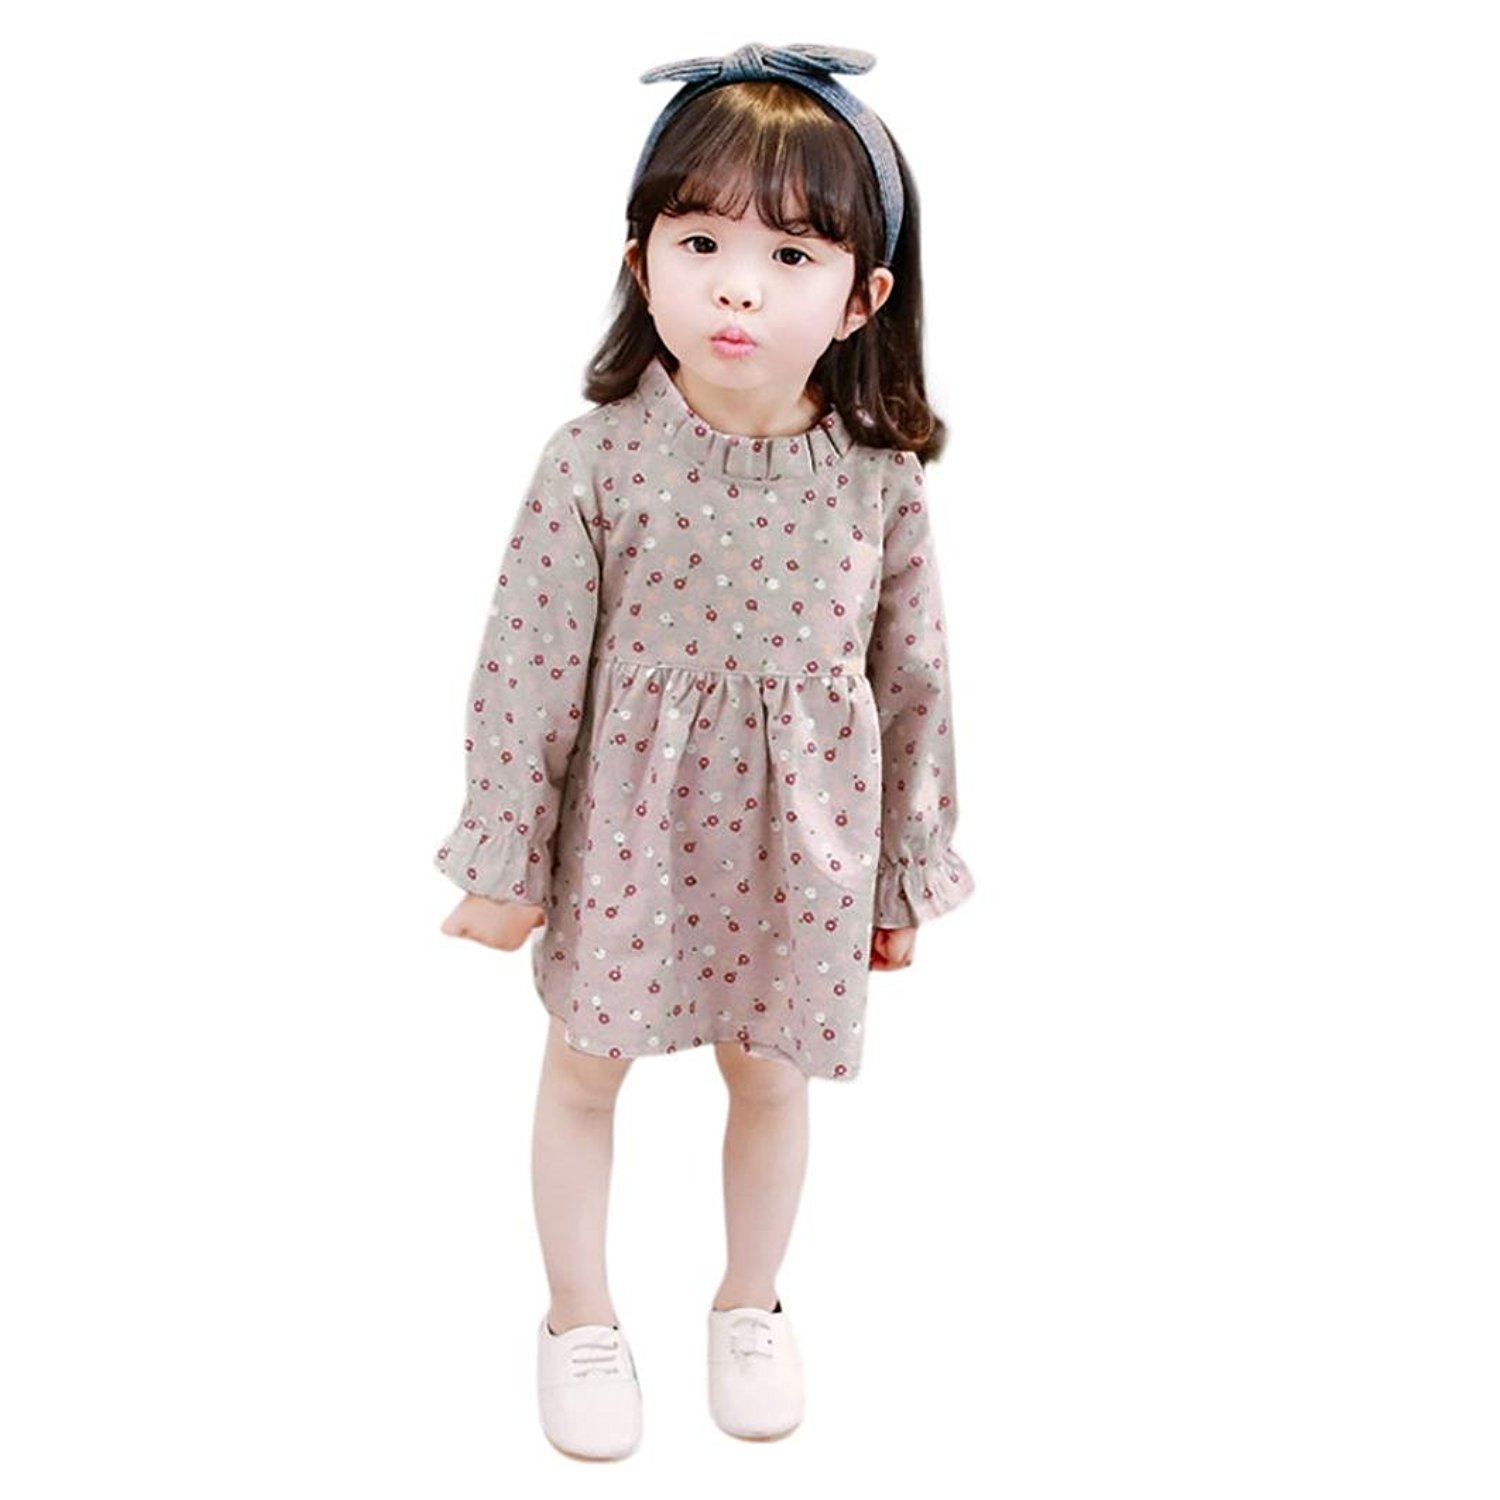 Baby Girls Sleeveless Ethnic Style Floral Printed Tassel Romper Jumpsuit Less Expensive Girls' Clothing (newborn-5t) Clothing, Shoes & Accessories